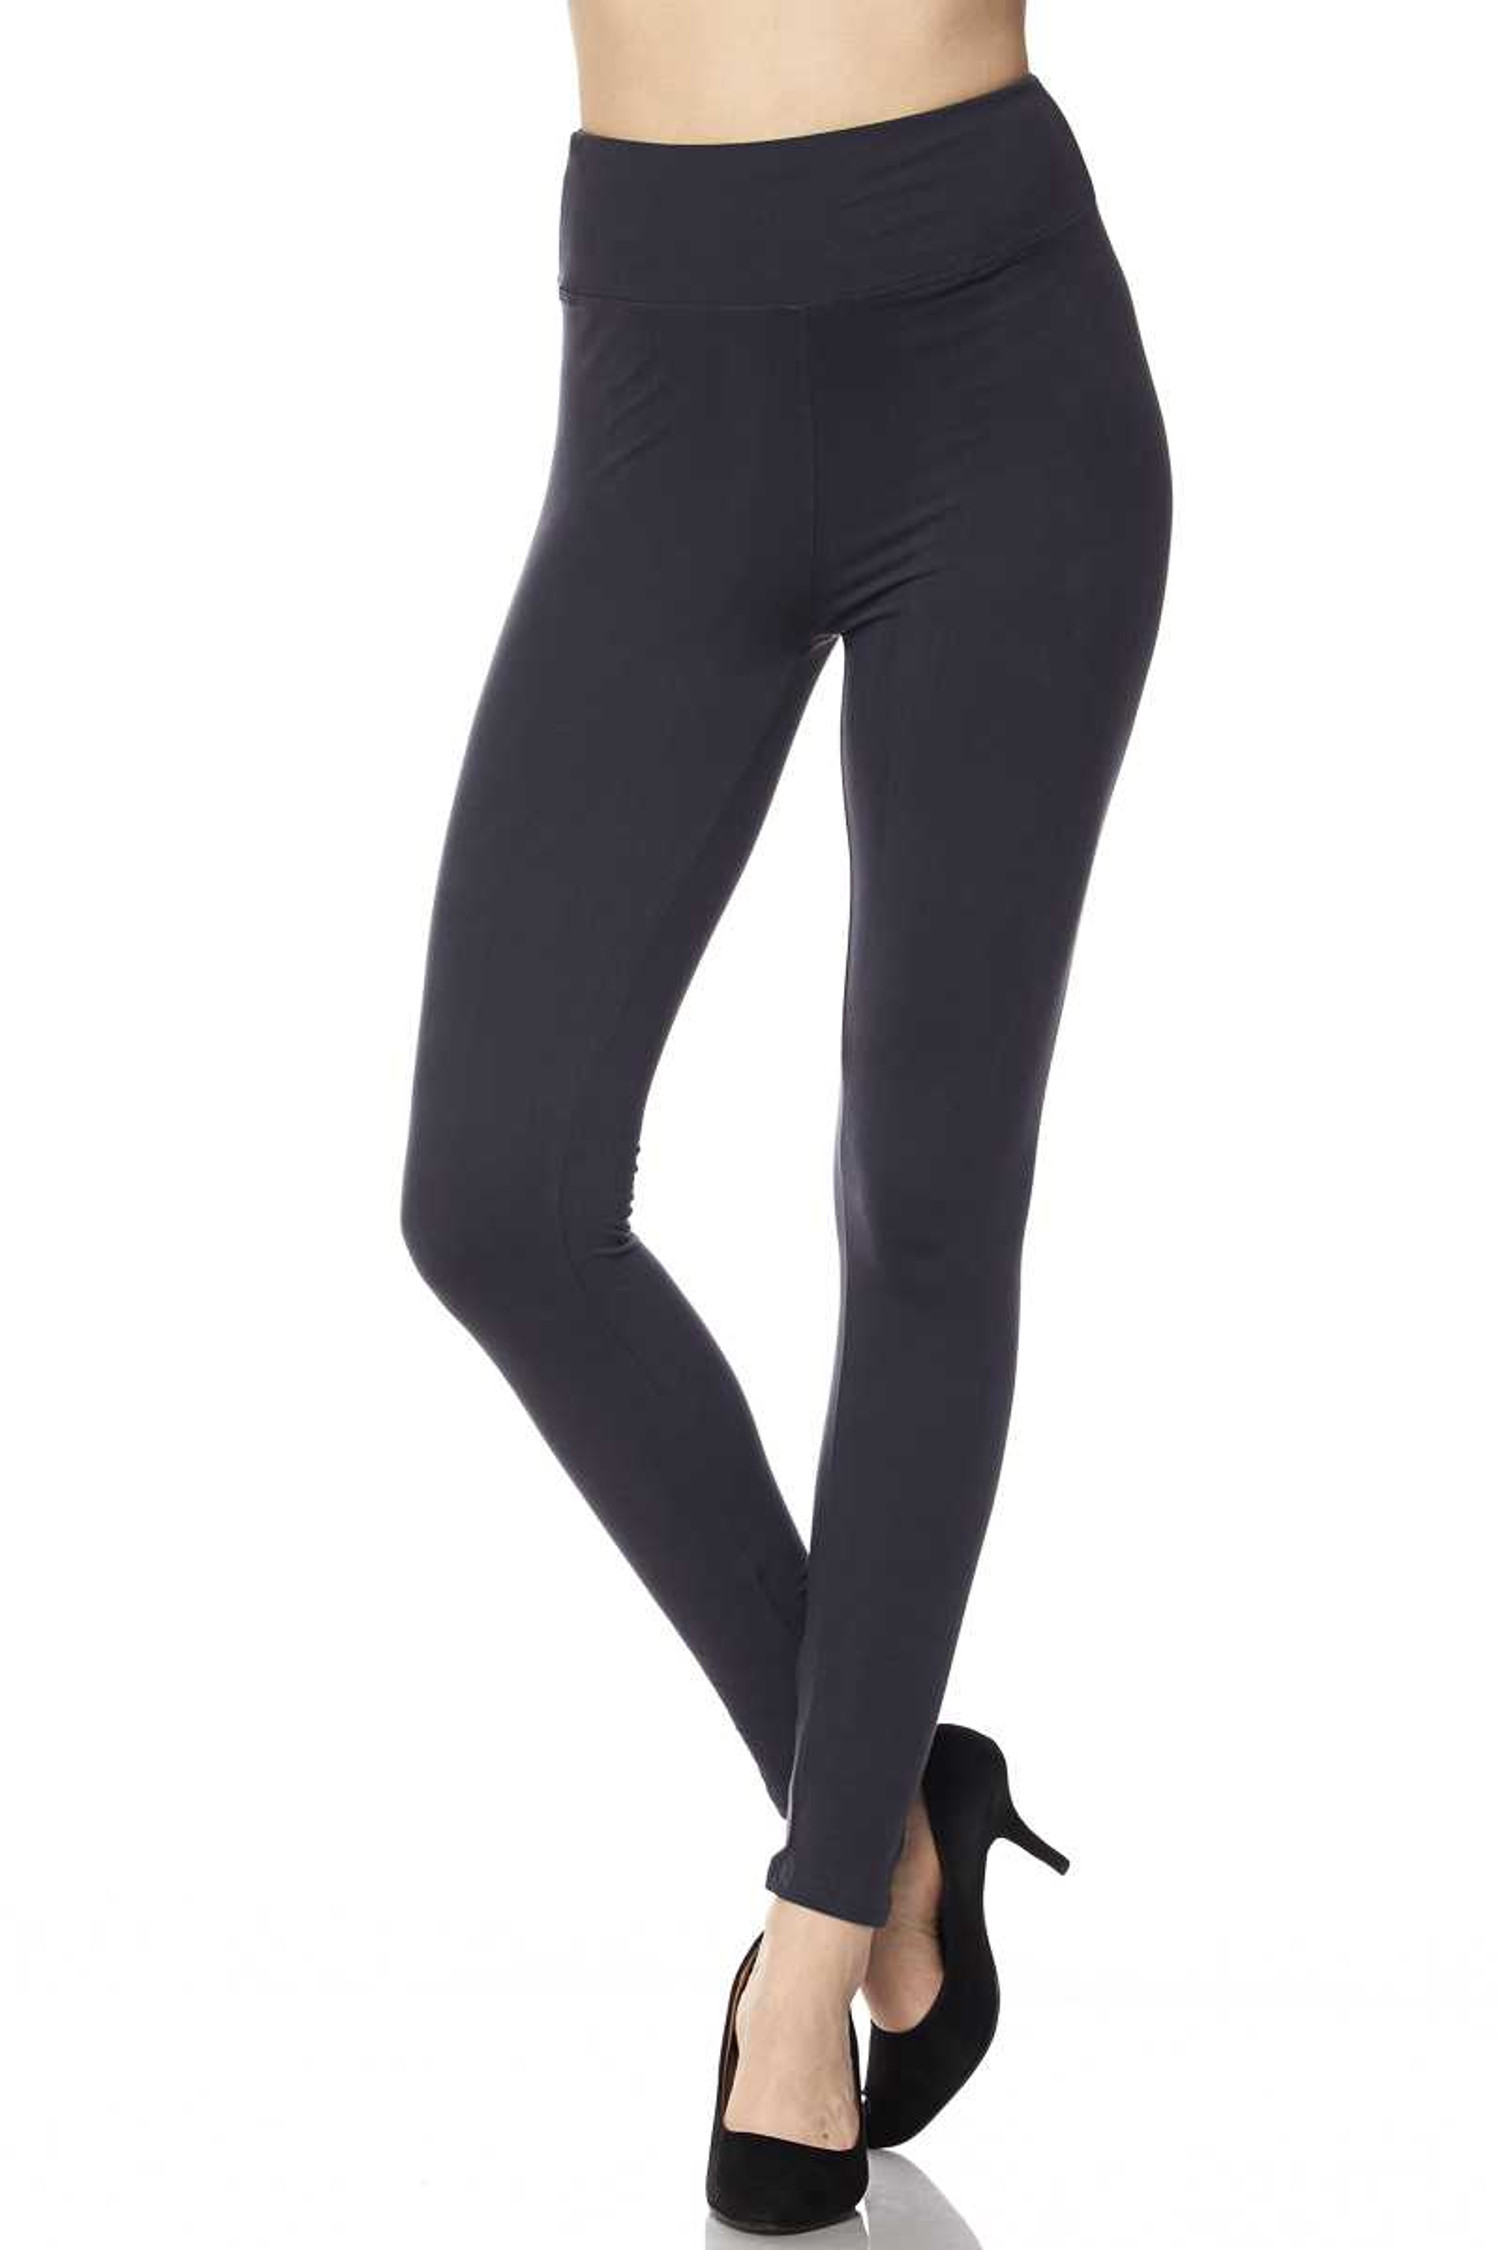 Brushed Basic Solid High Waisted Plus Size Leggings - 3X-5X - New Mix